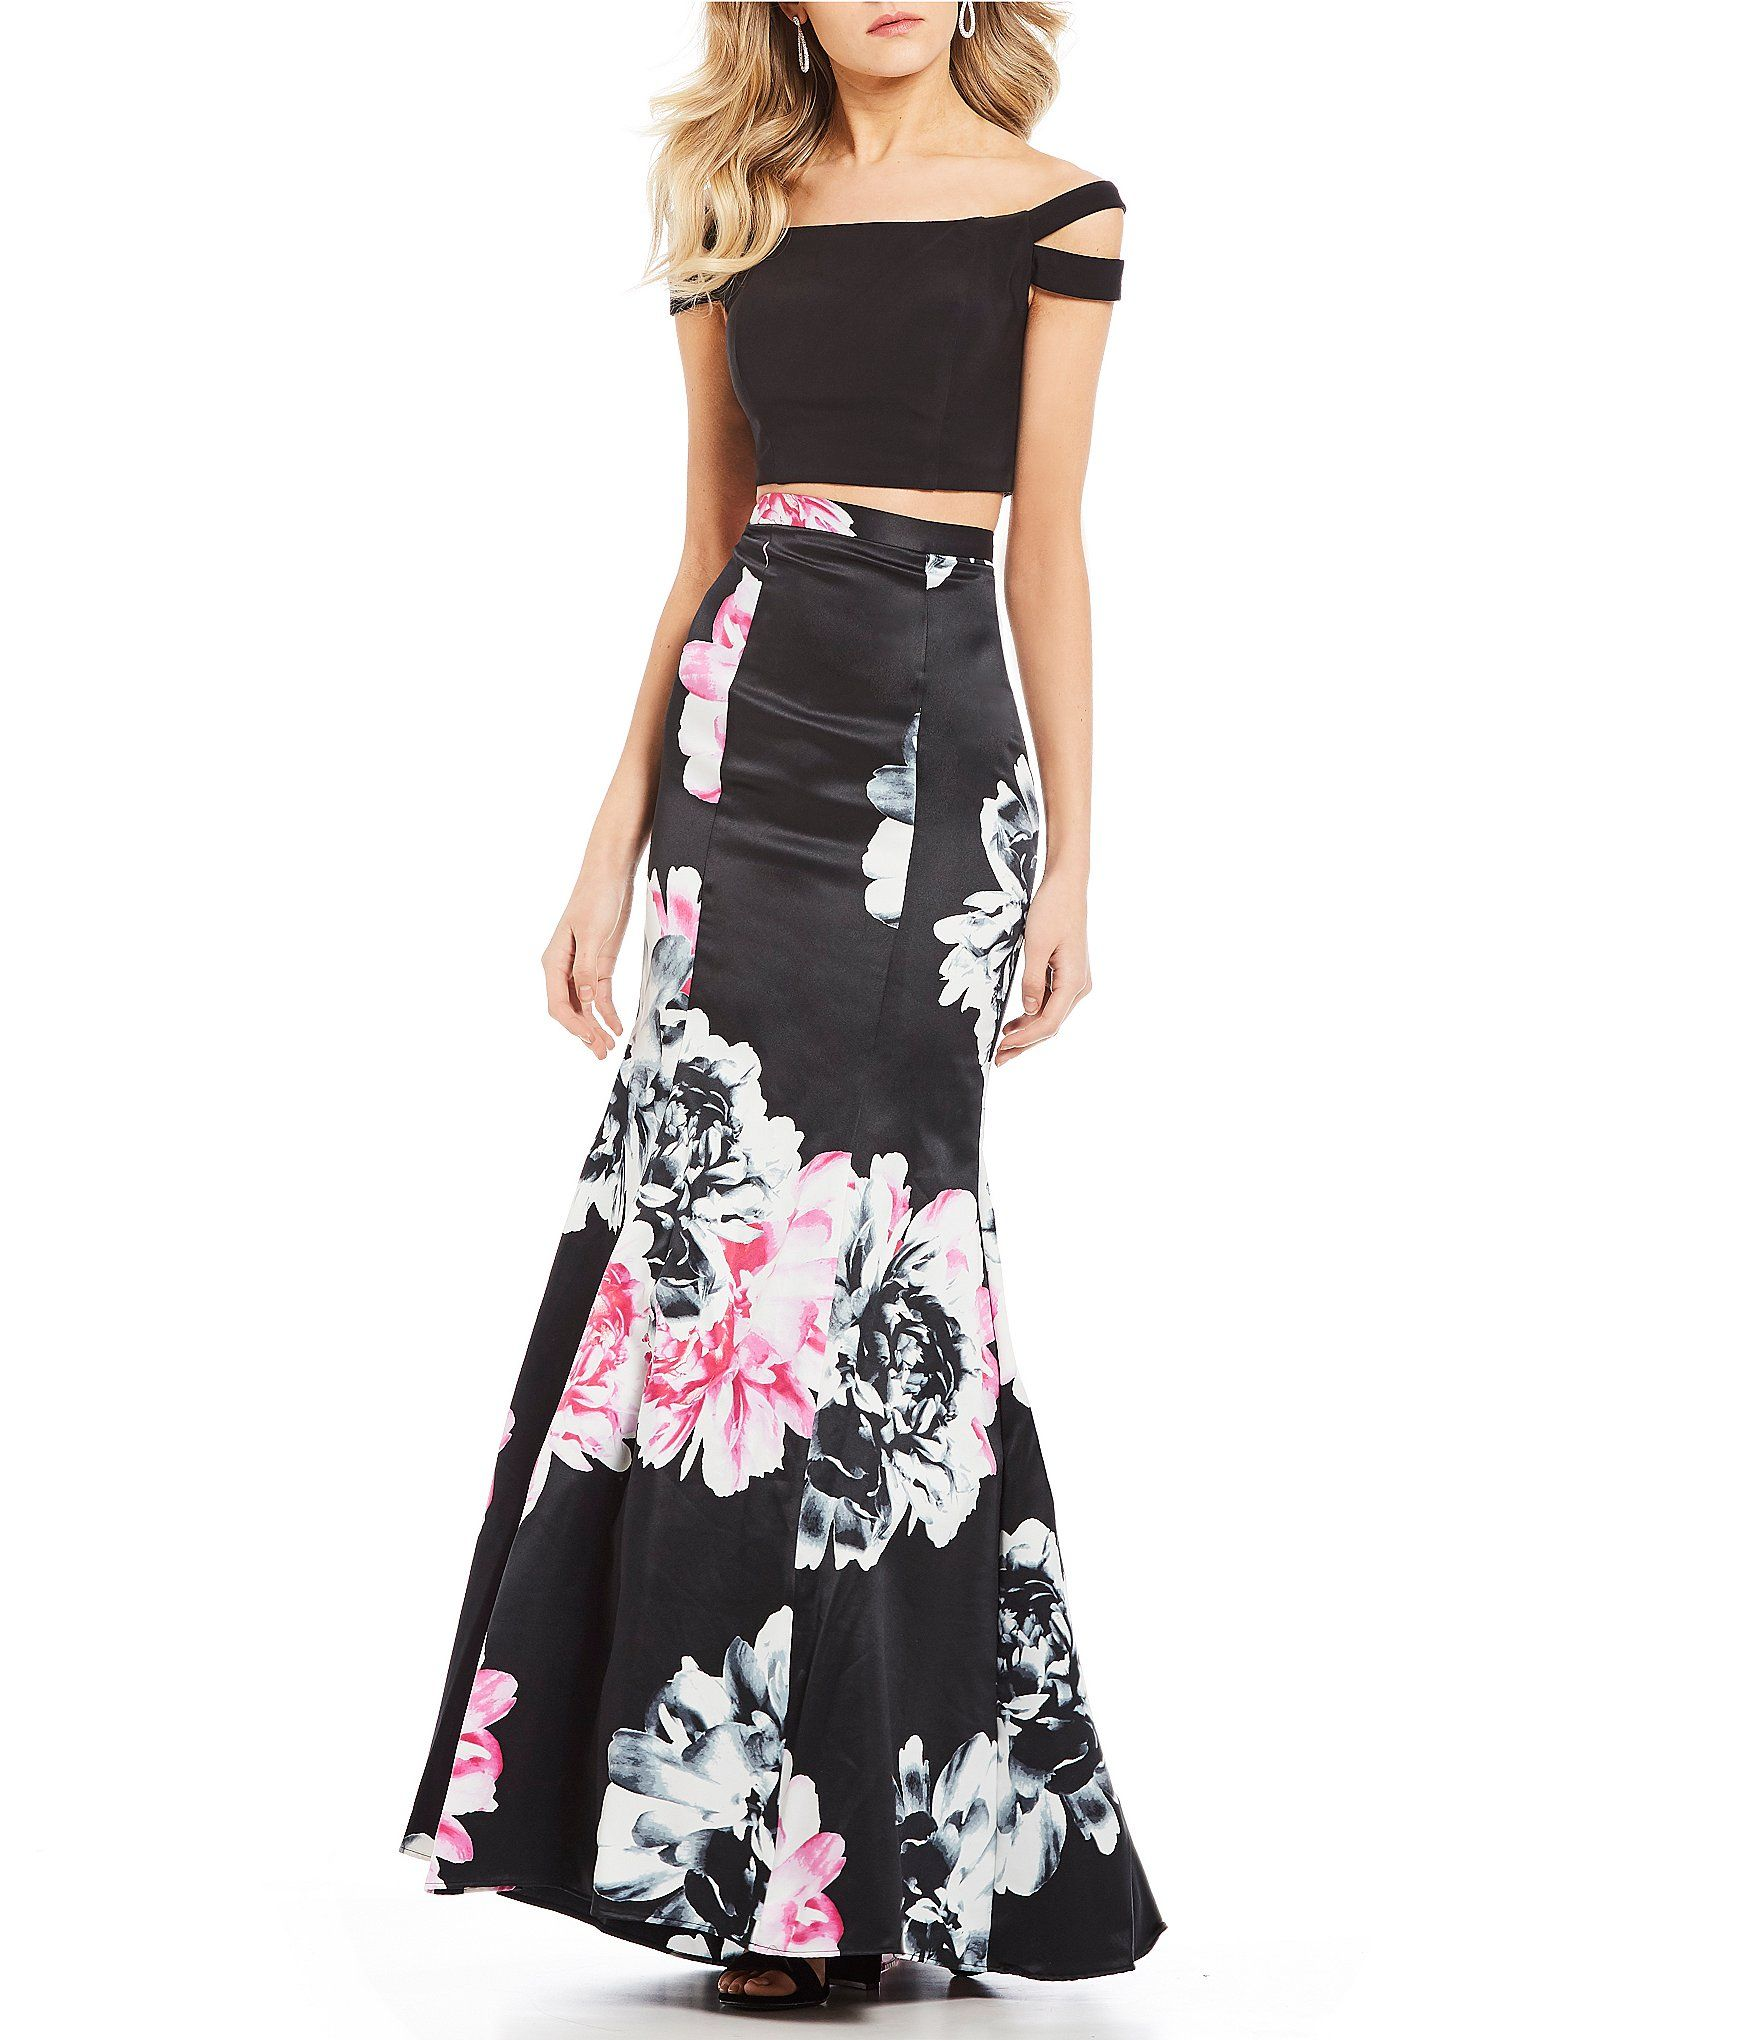 8538732ef04 Shop for Blondie Nites Off-The-Shoulder Top with Floral Skirt Two-Piece  Dress at Dillards.com. Visit Dillards.com to find clothing